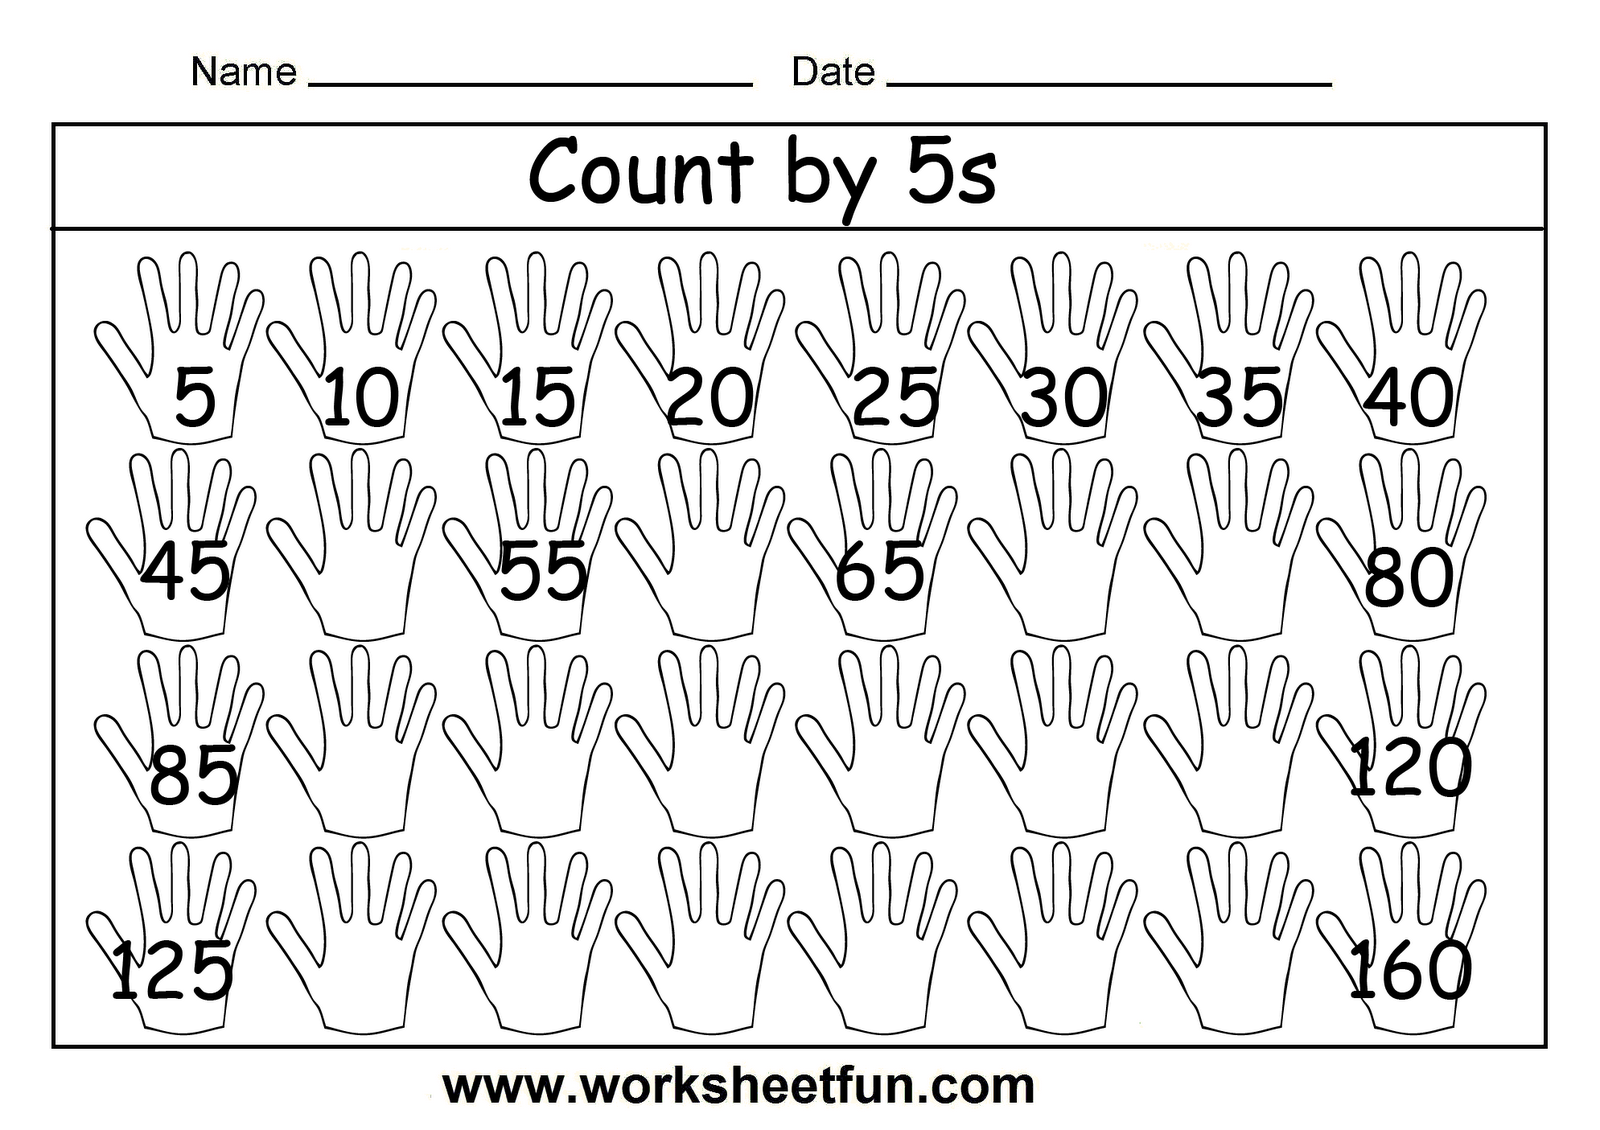 Worksheet Skip Counting Free Worksheets 1000 images about counting by 5s on pinterest skip count and worksheets